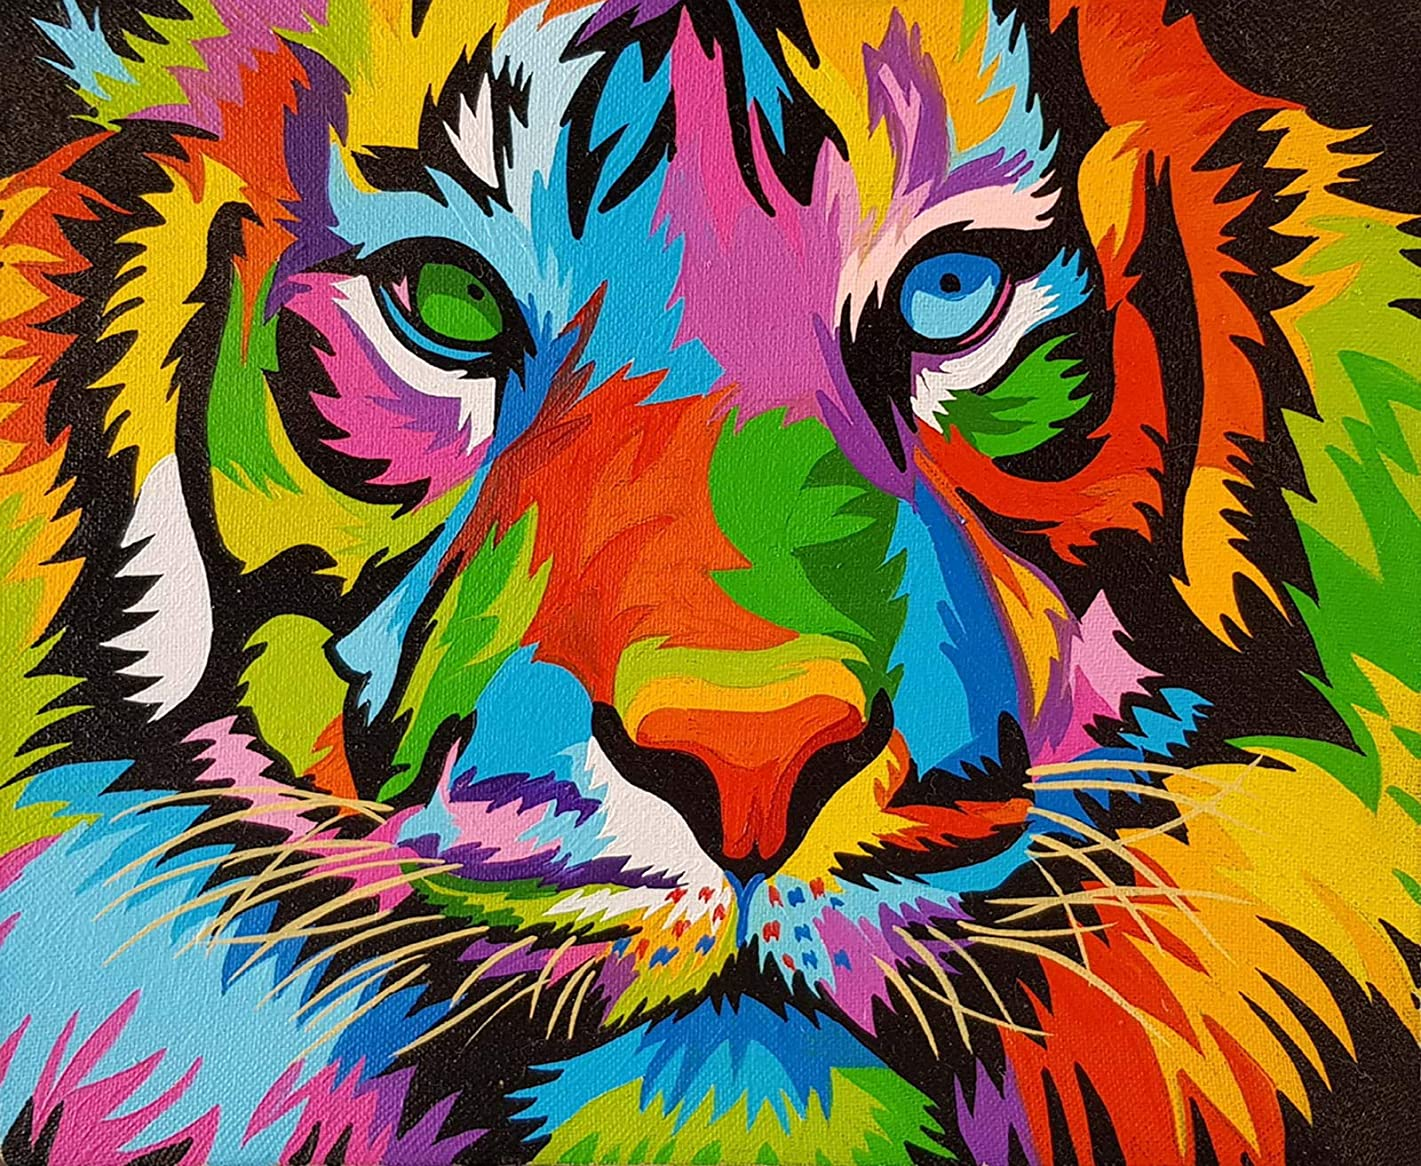 iFymei DIY Oil Painting Kit , Paint by Numbers for Adults & Kids & Beginner , 16 x 20 inch Canvas & Acrylic Paints - Coloured Tiger